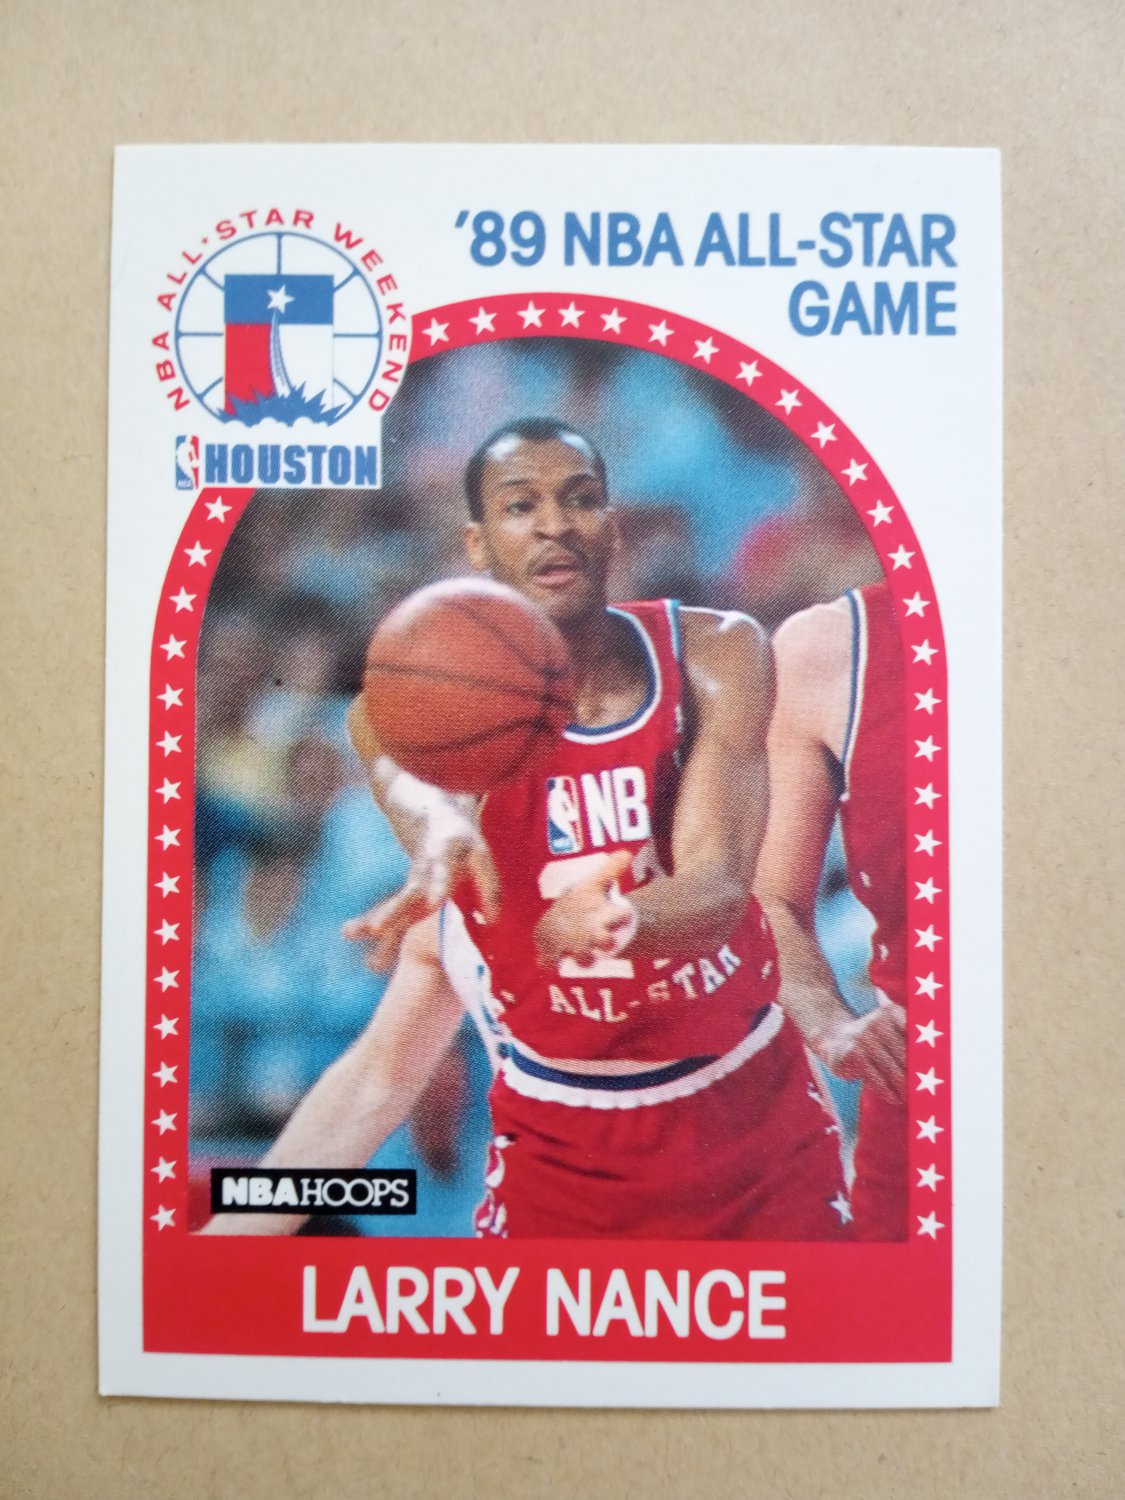 1989-90 NBA Hoops #217 Larry Nance Cleveland Cavaliers All-Star